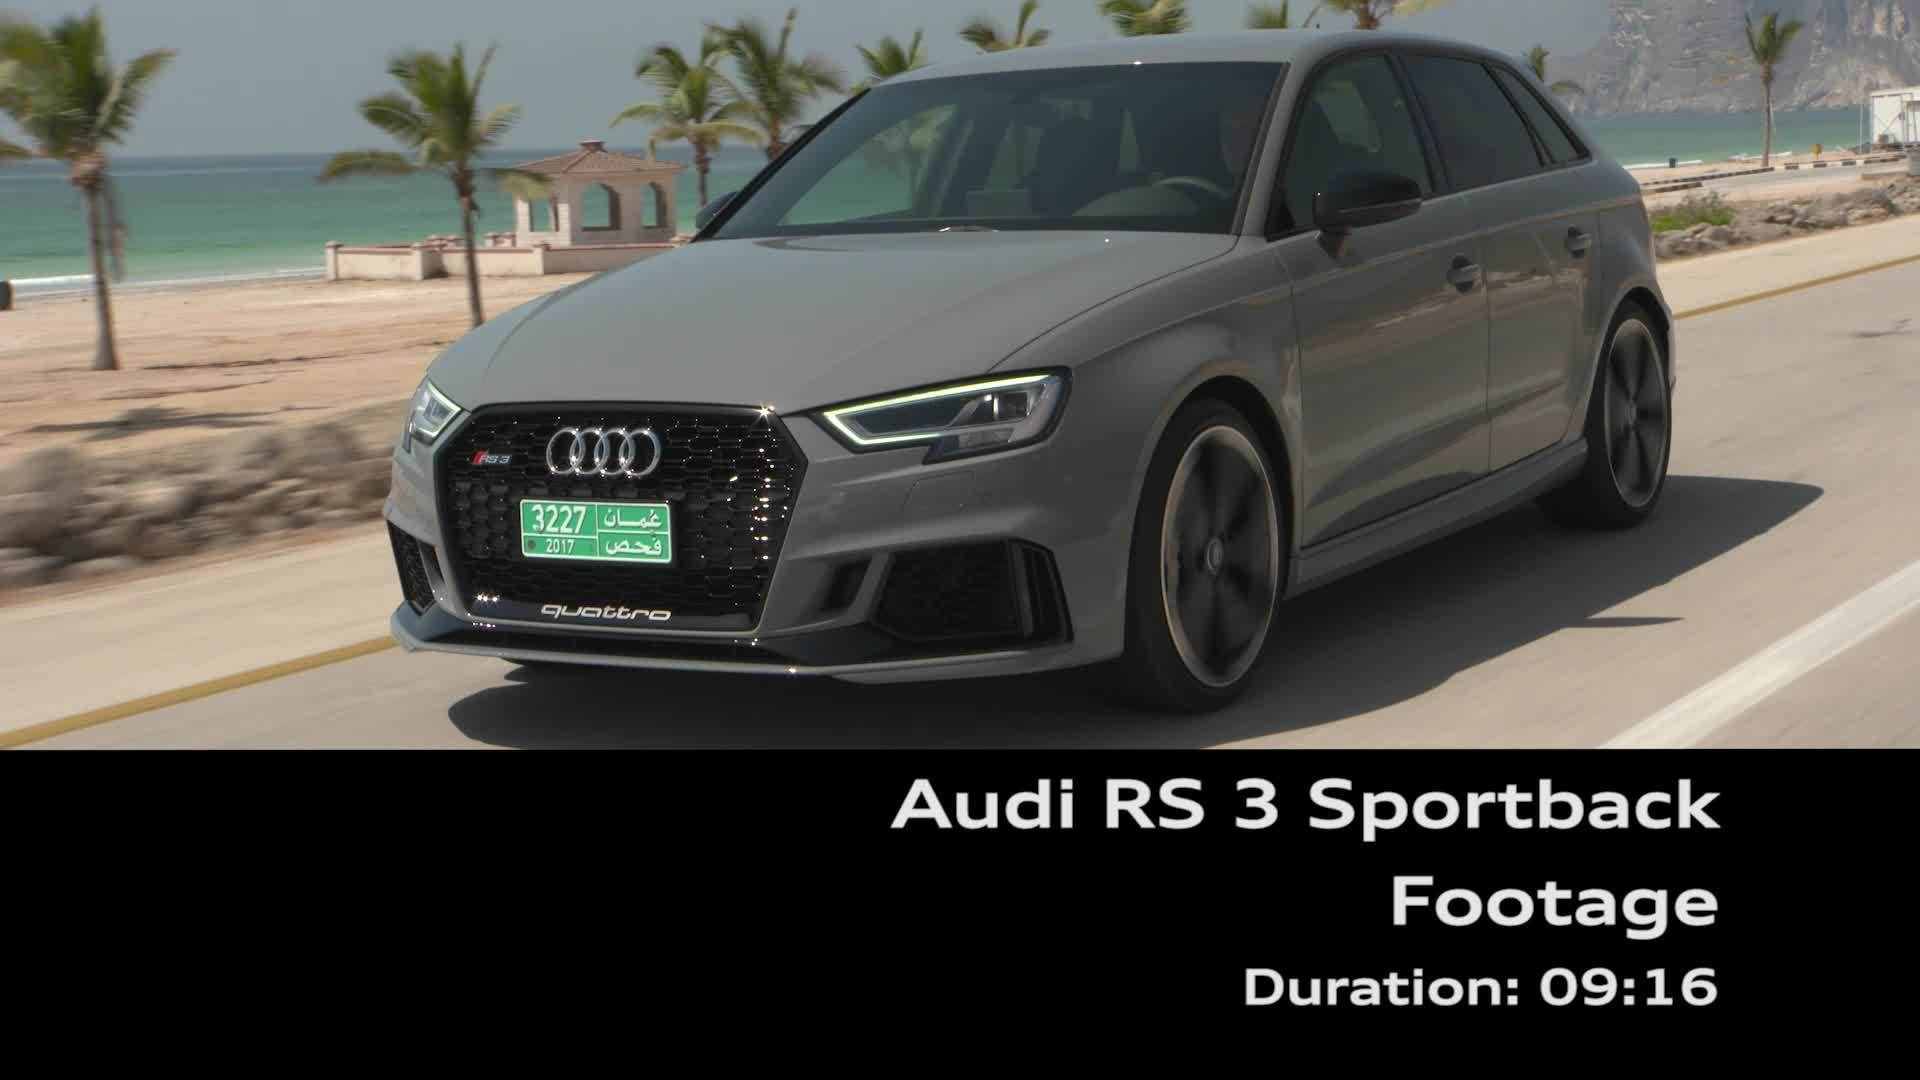 Audi RS 3 Sportback - Footage on Location Oman